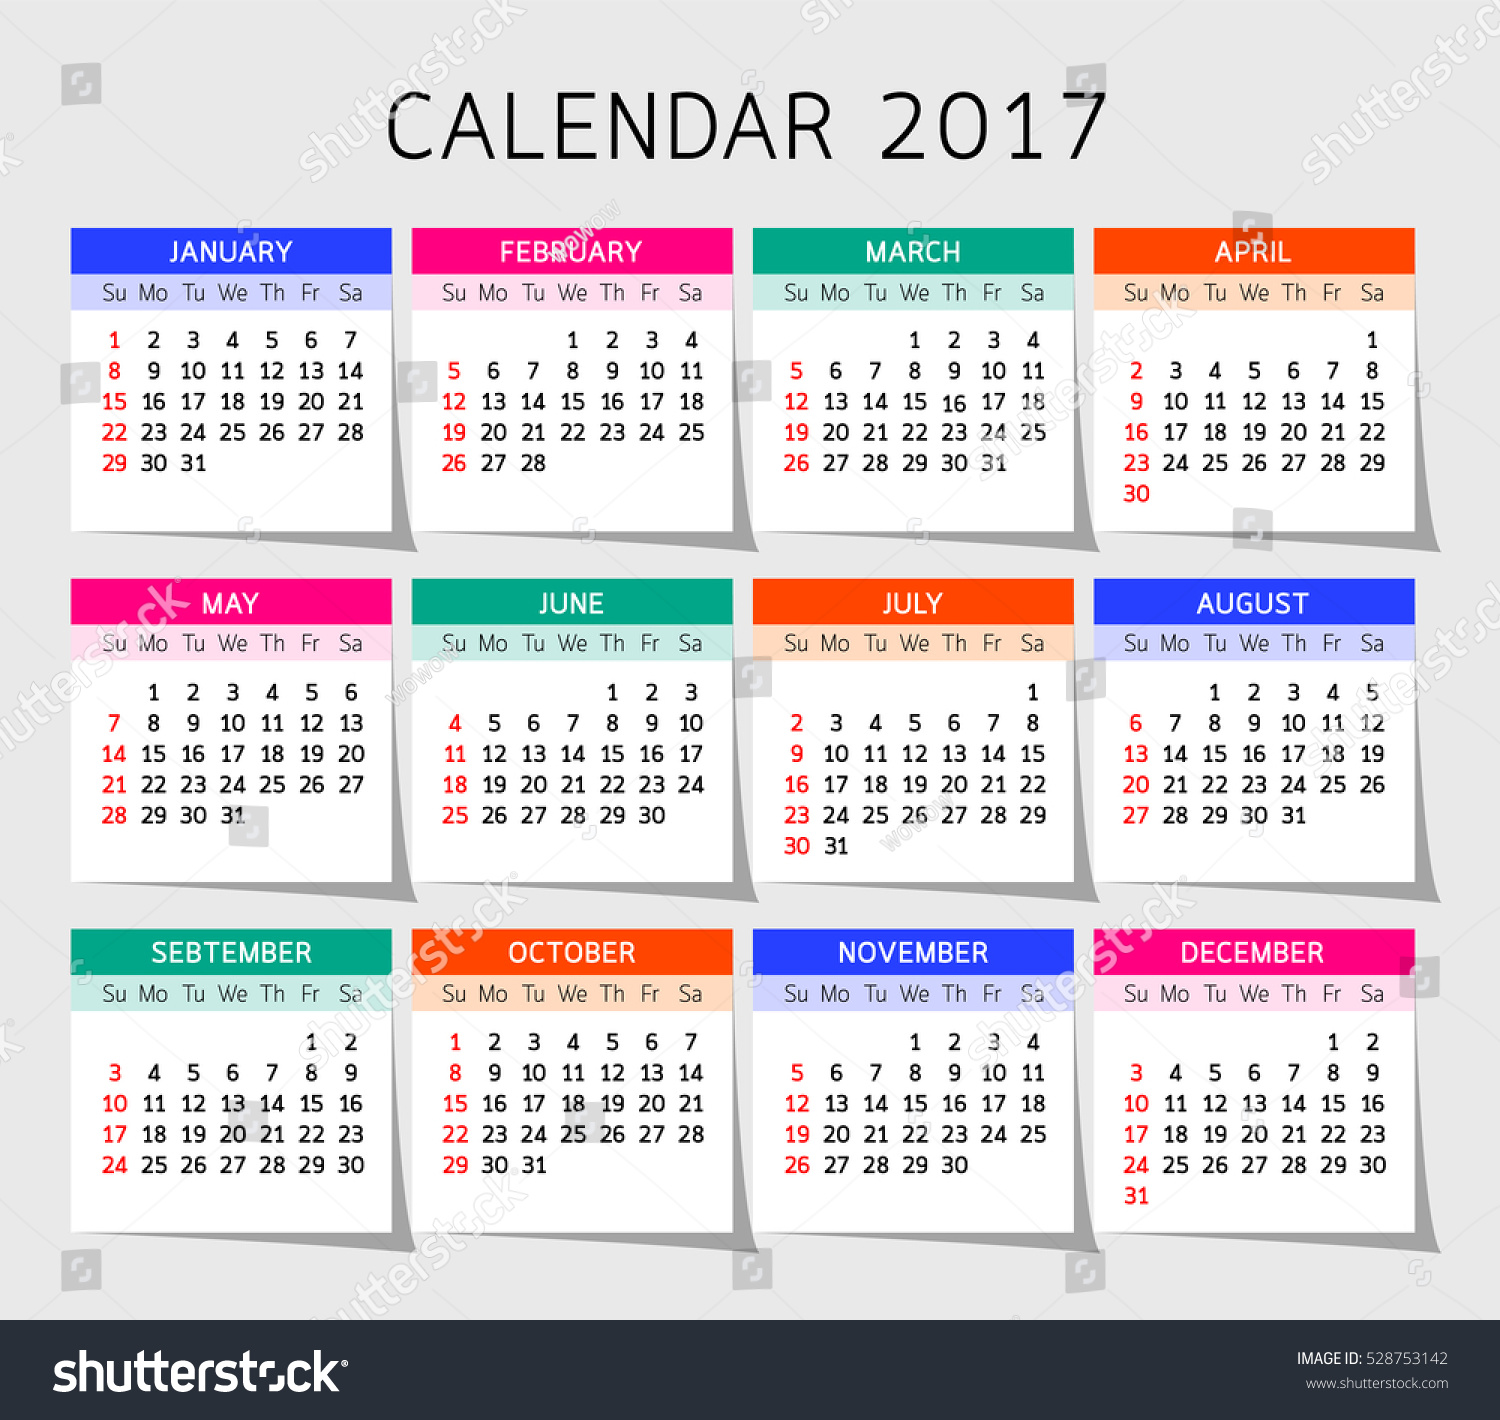 Calendar Month Illustration : Calendar year vector illustration design template stock